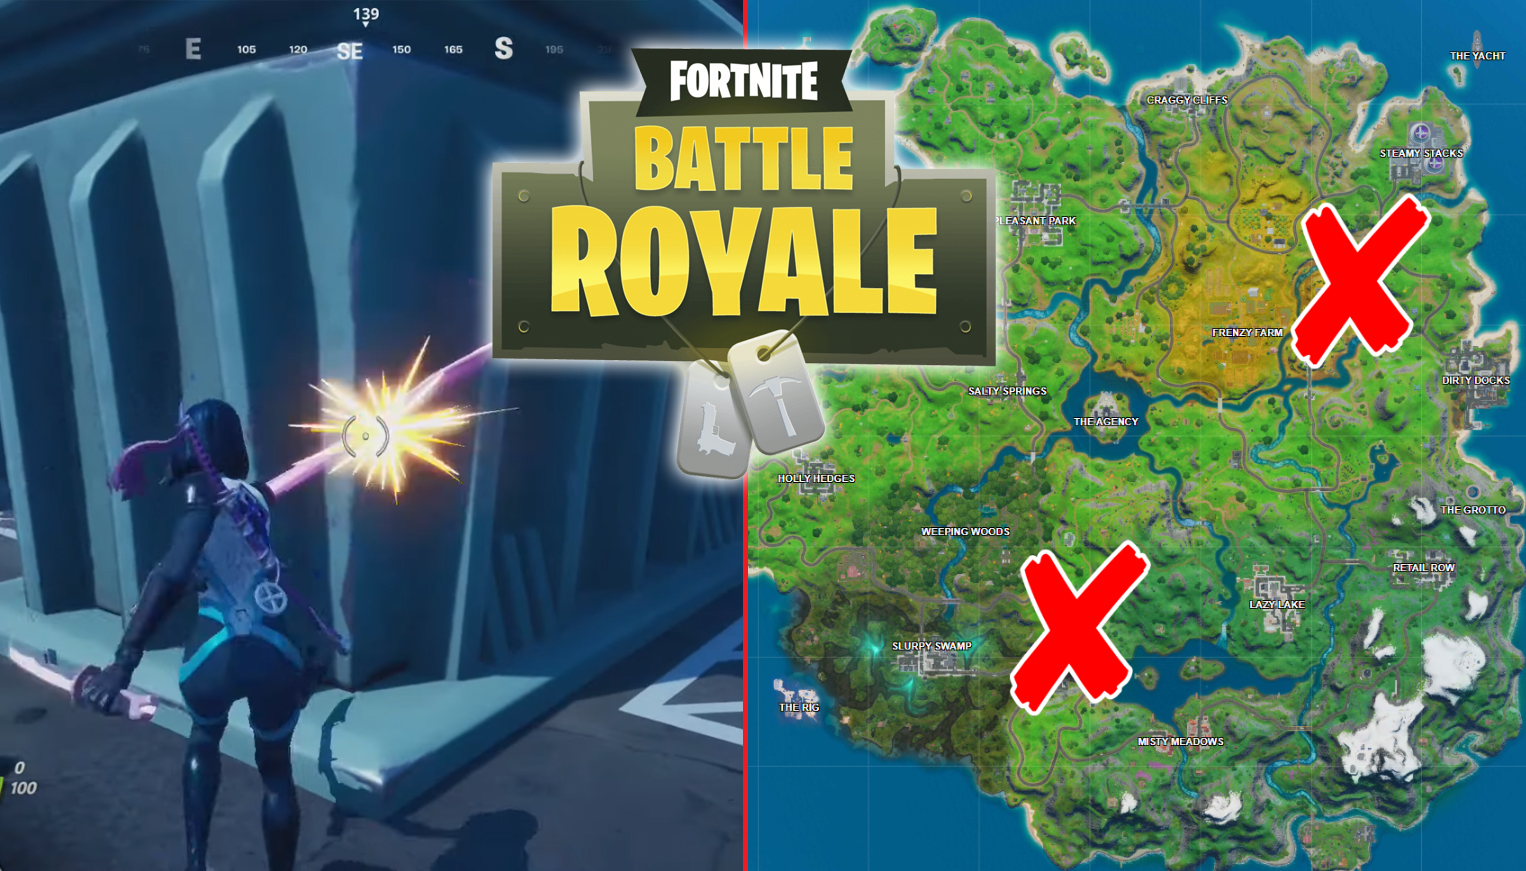 All Fortnite Metal At Hydro 16 Or Compact Cars Locations Game Life